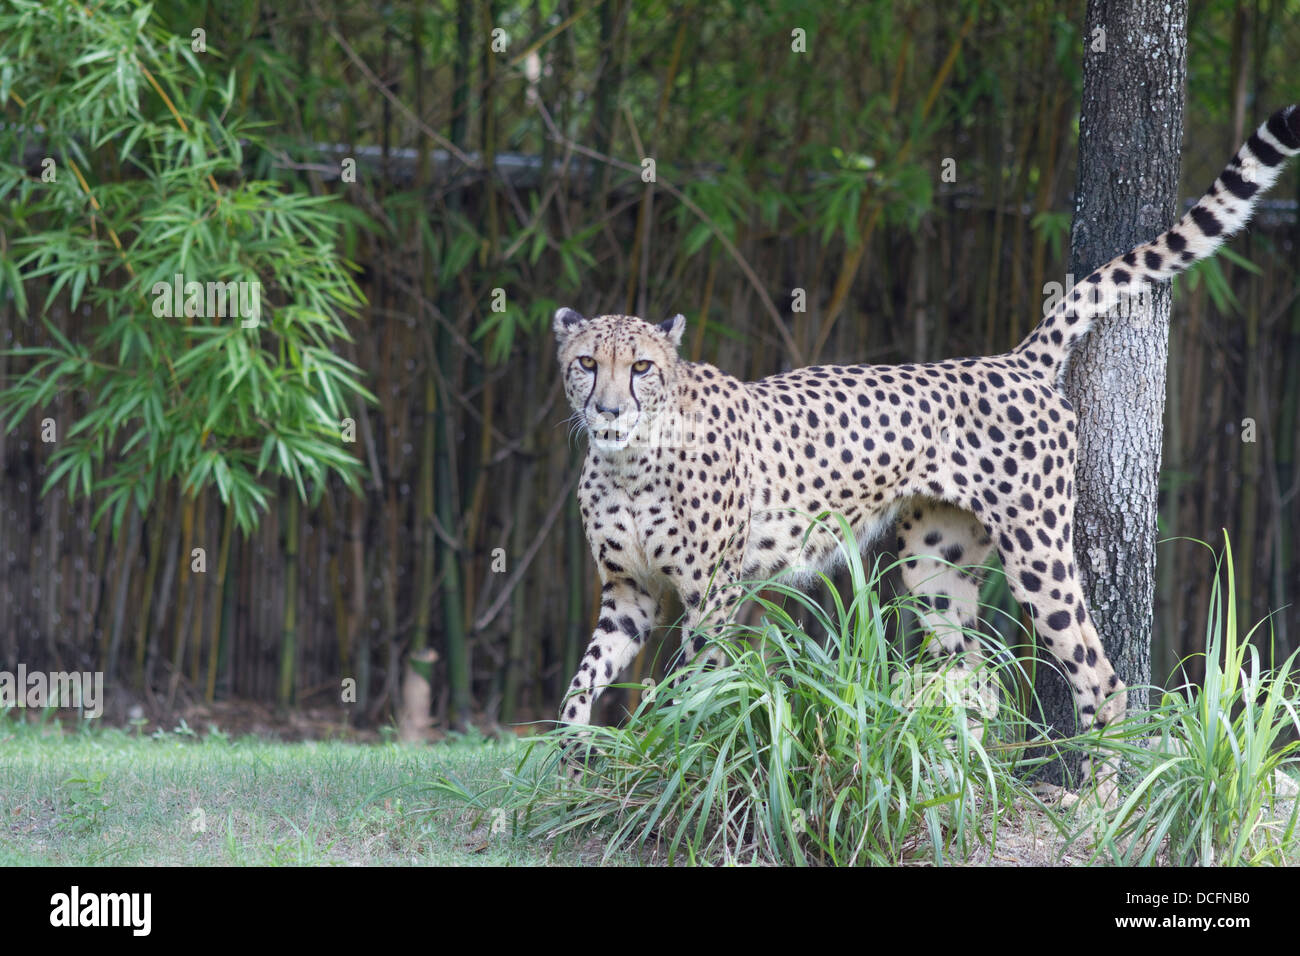 Cheetah, Acinonyx jubatus, also known as the hunting leopard  found  in eastern and southern Africa Stock Photo